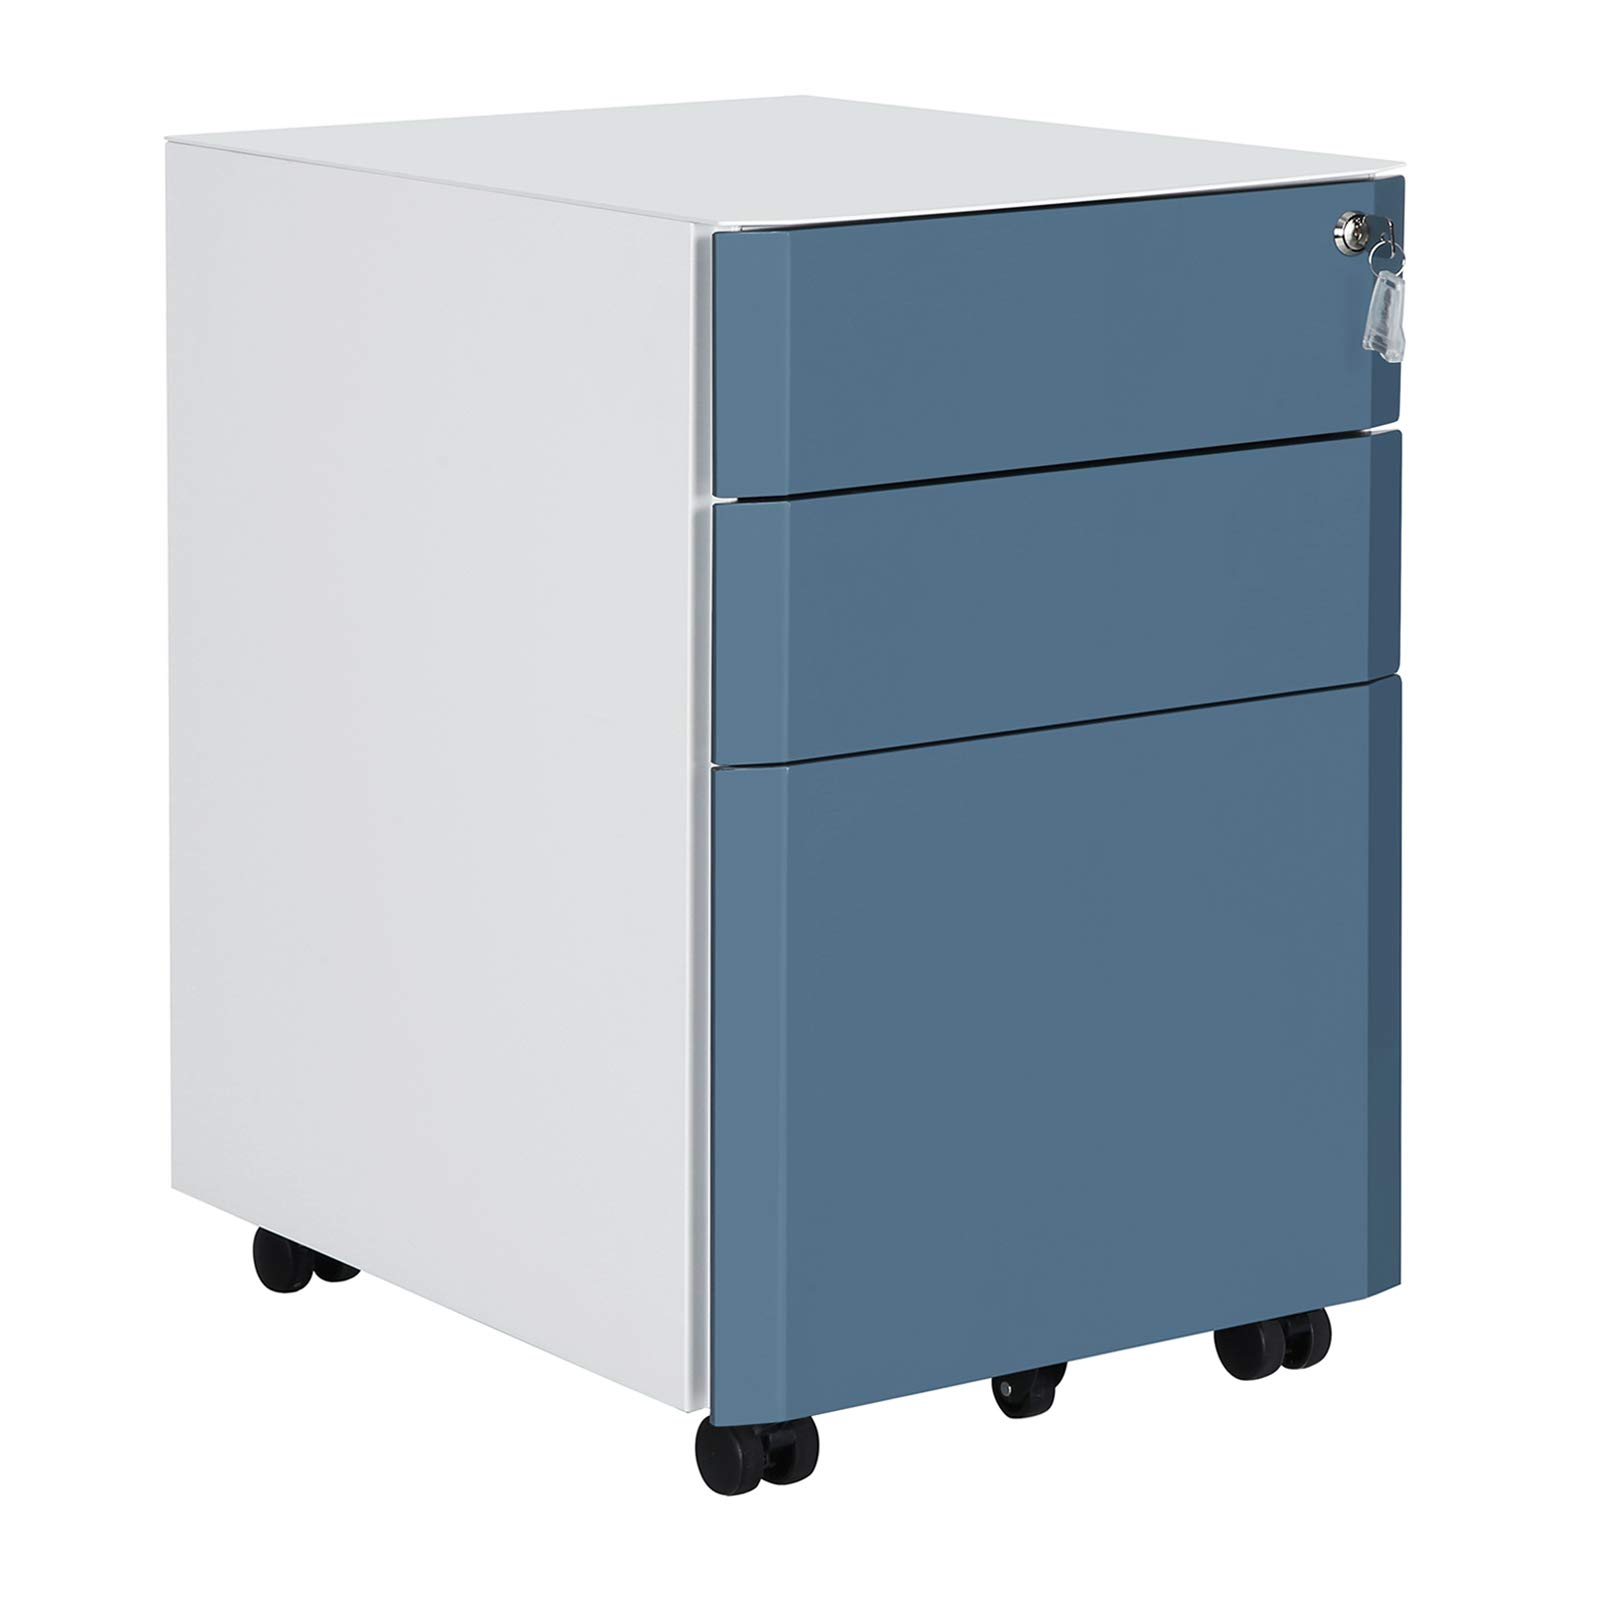 SONGMICS Mobile File Cabinet, Lockable, Metal Filing Pedestal with 3 Drawers, for Document, Stationery, Hanging Folder, White and Slate Blue UOFC70WB by SONGMICS